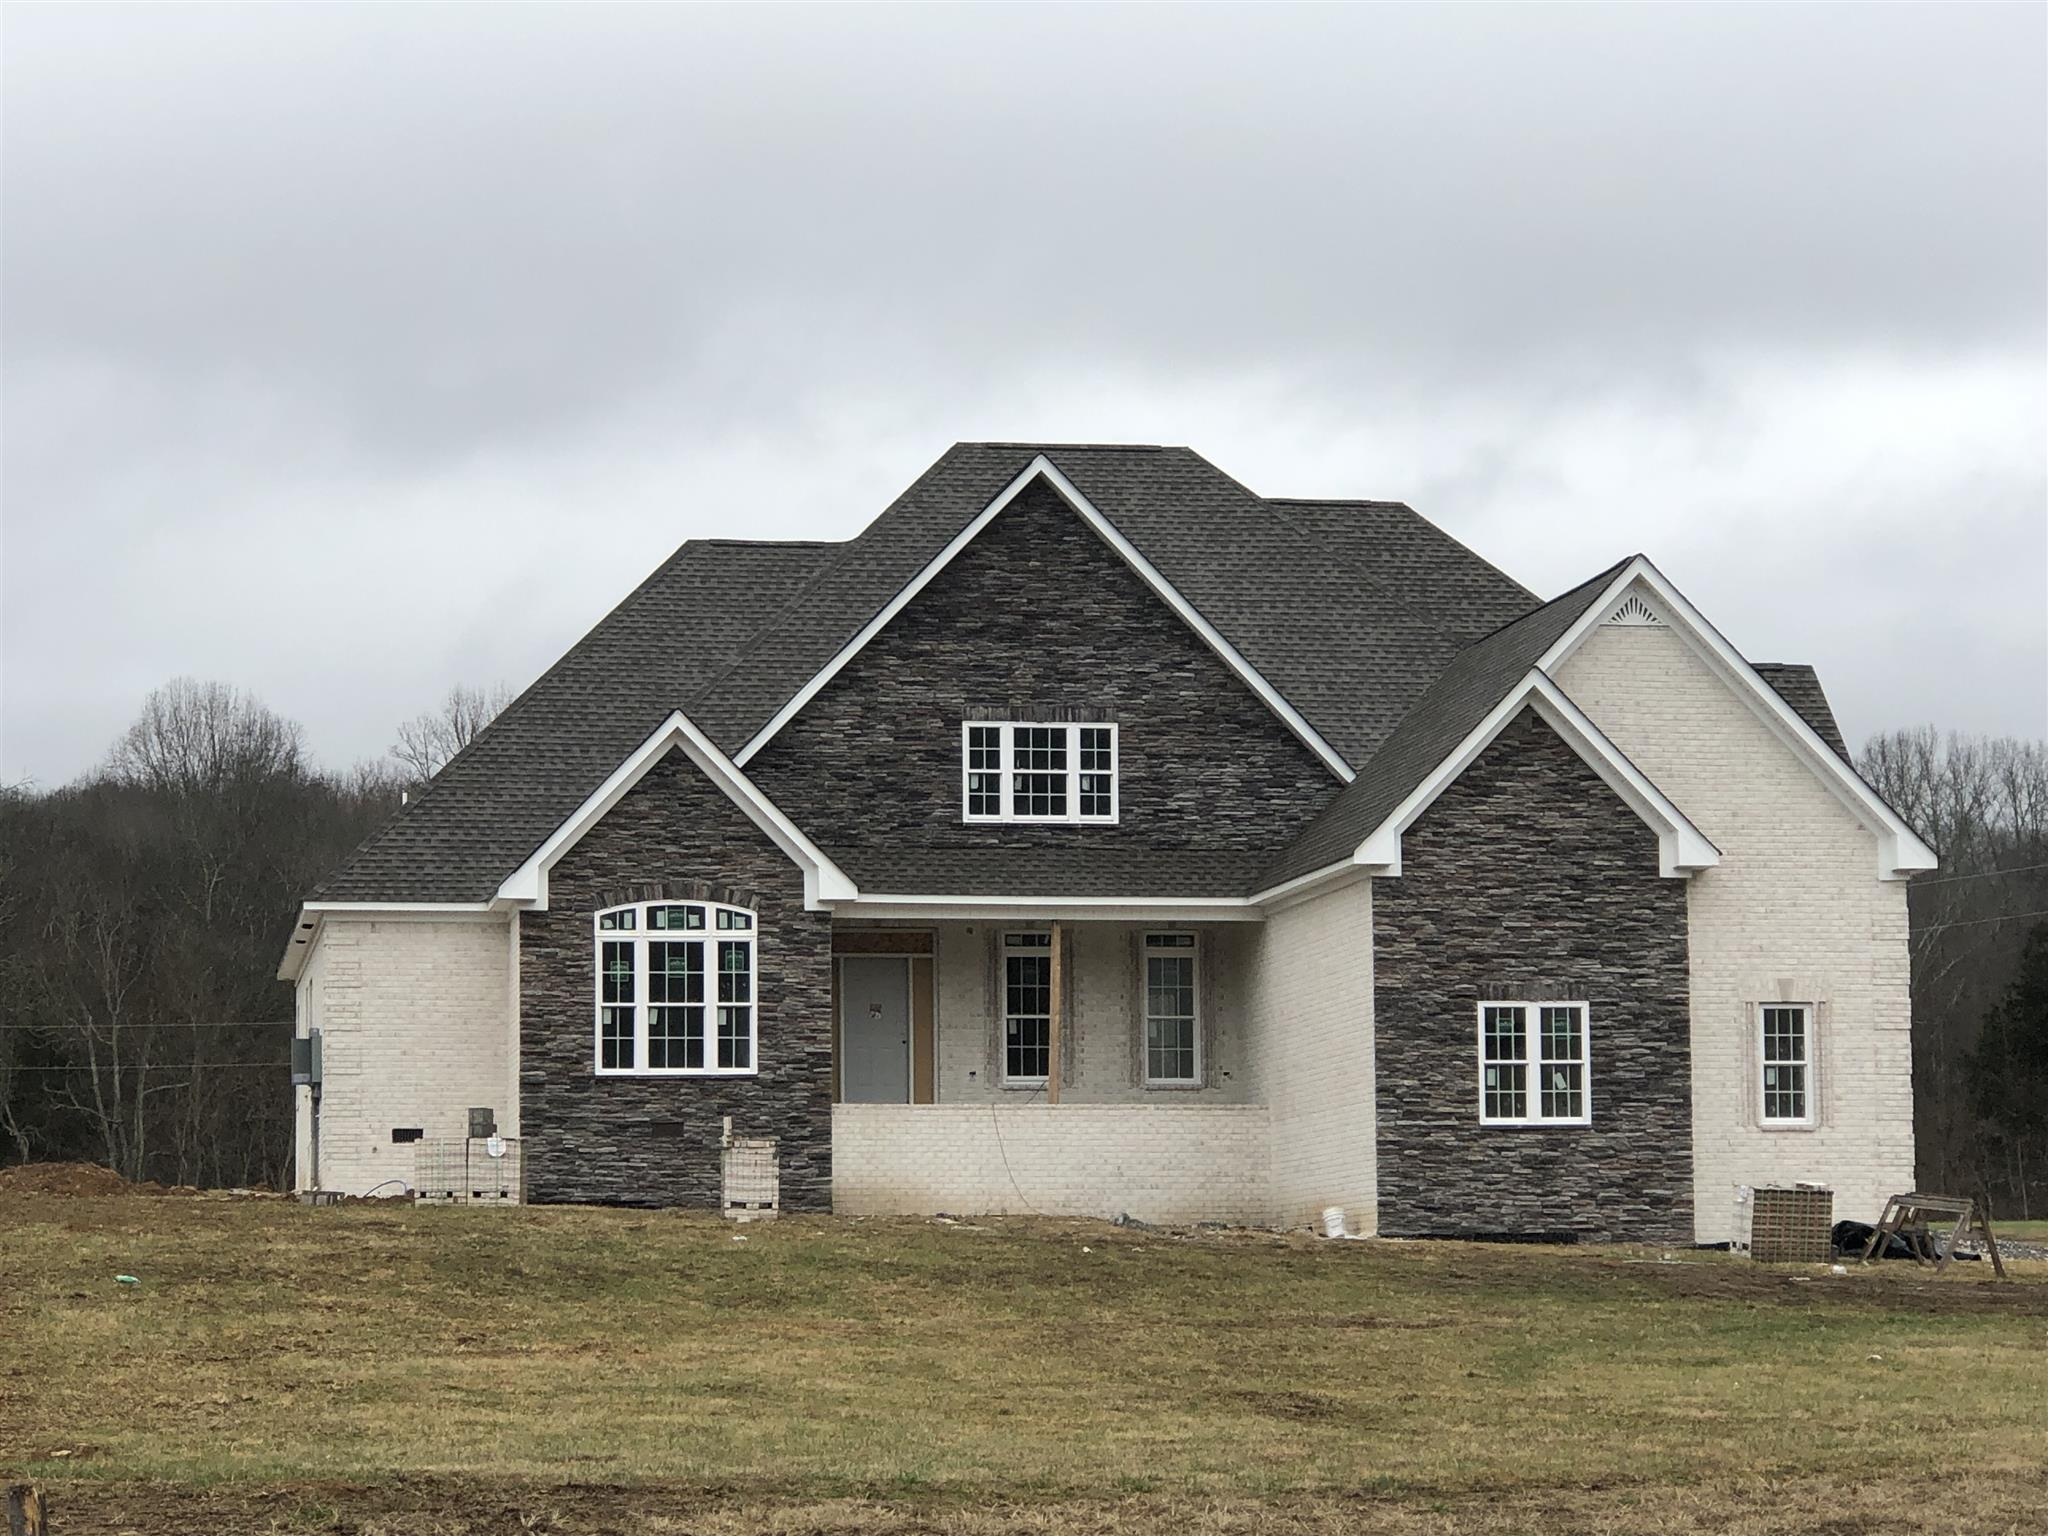 Gorgeous Open Floorplan Home Situated On Nearly An Acre at 1249 Sandy Valley Rd., Hendersonville, TN.  37075